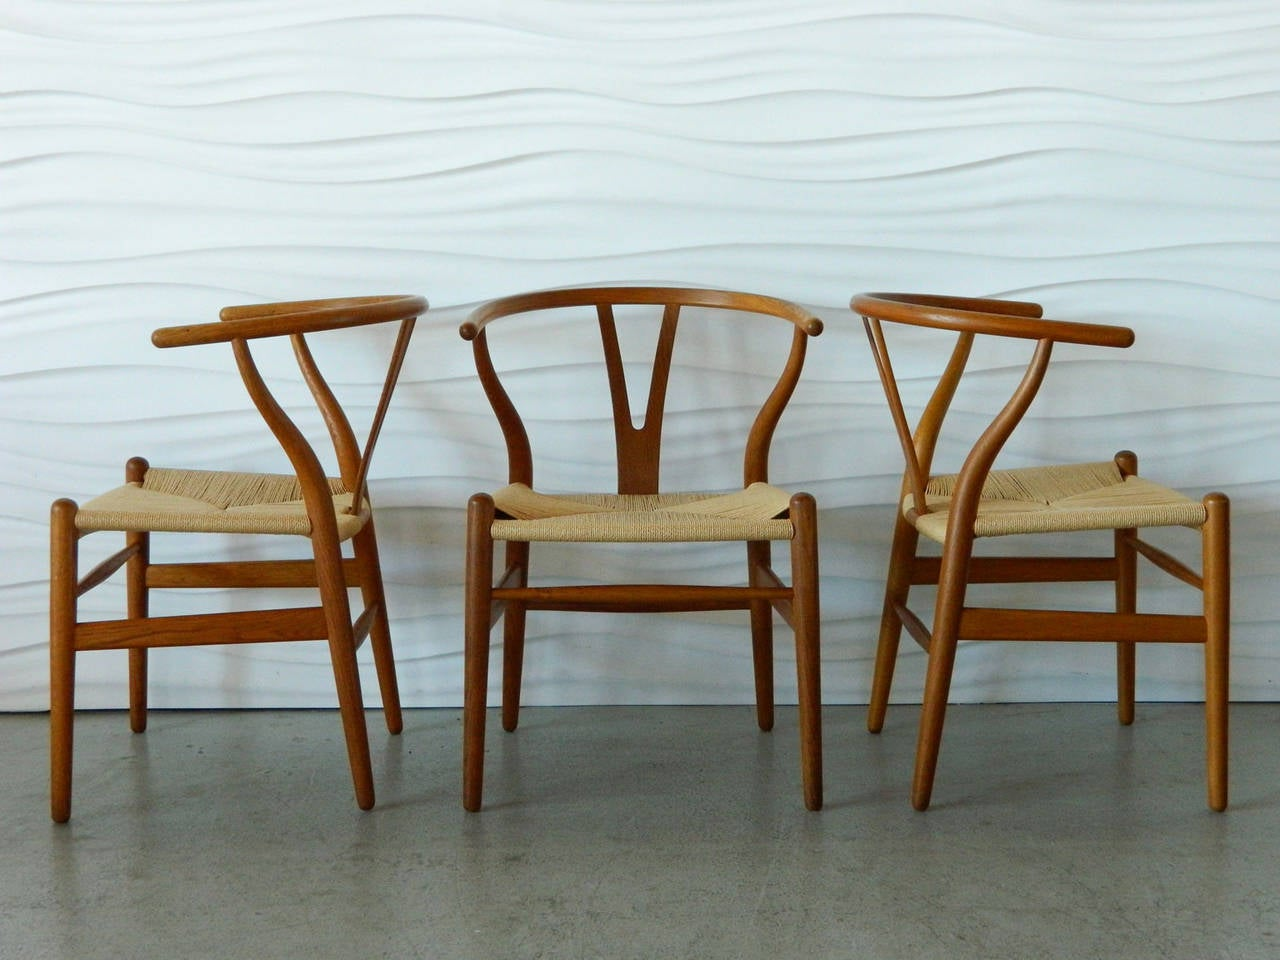 Hans Wegner Teak Wishbone Chairs 2 - Hans Wegner Teak Wishbone Chairs At 1stdibs